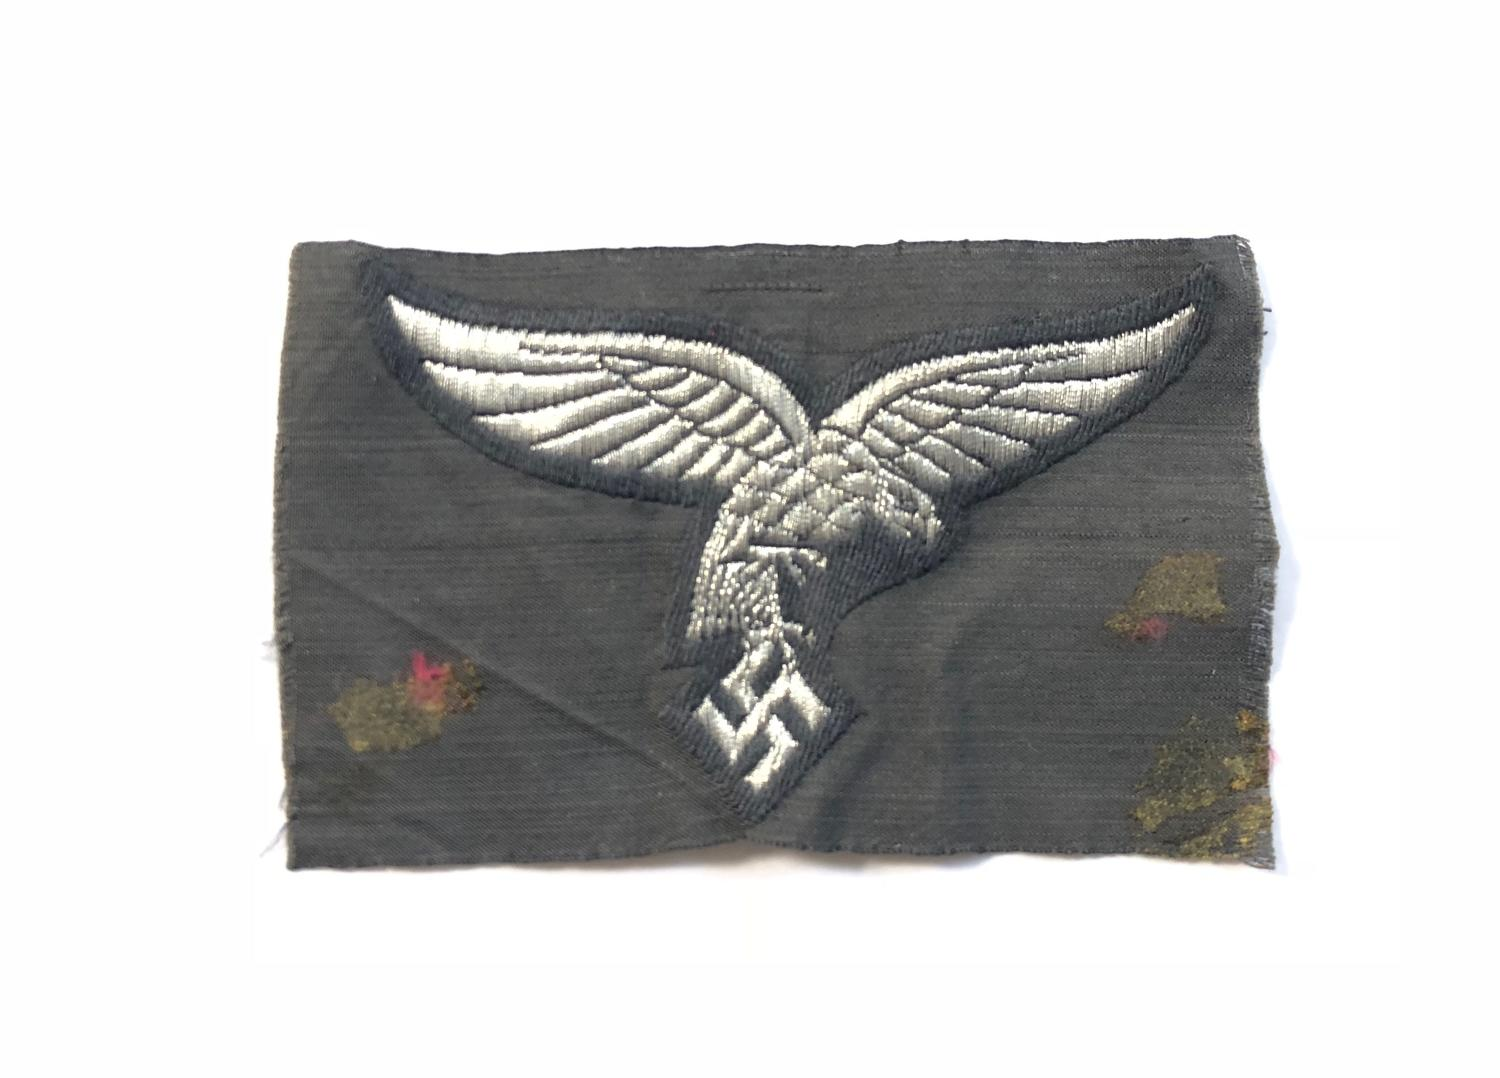 WW2 Luftwaffe BeVo cloth 'drop tail' eagle Badge.